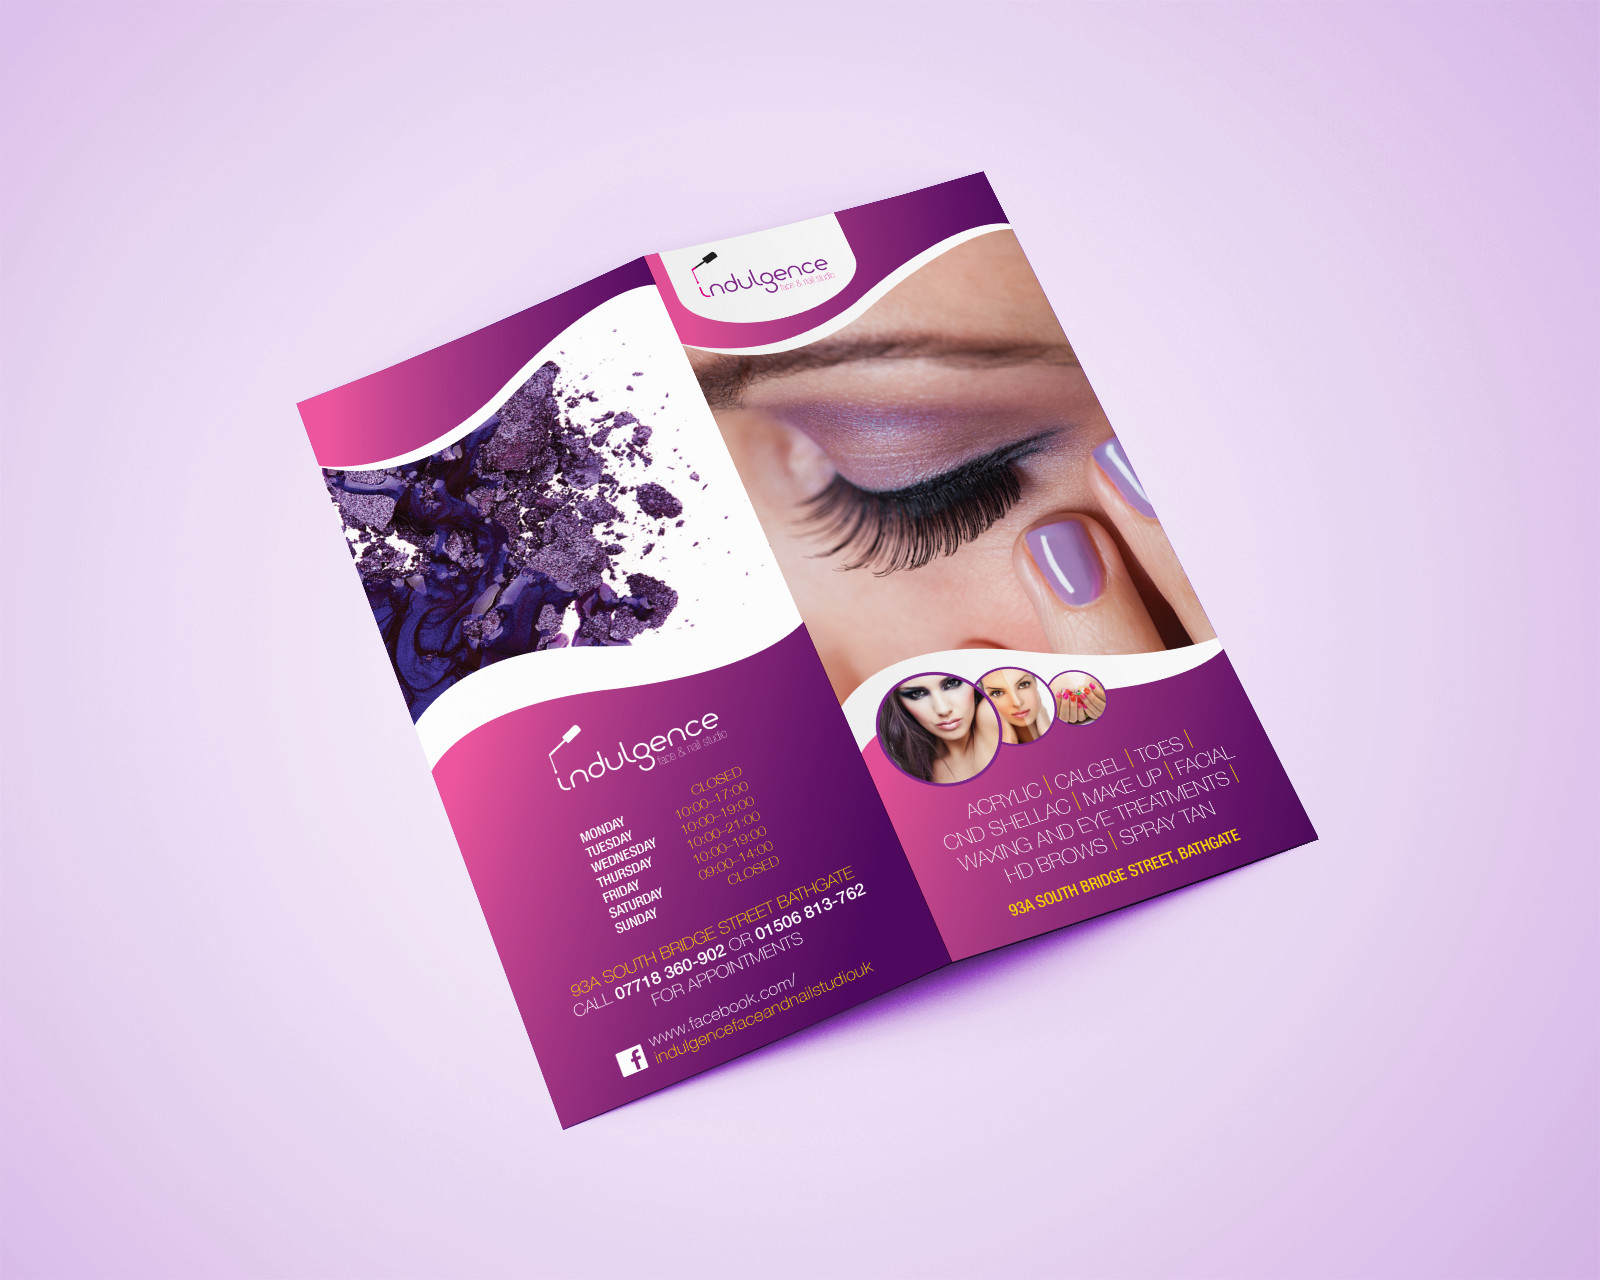 Flyer-design-Glasgow-Edinburgh-West-Lothian-09.jpg